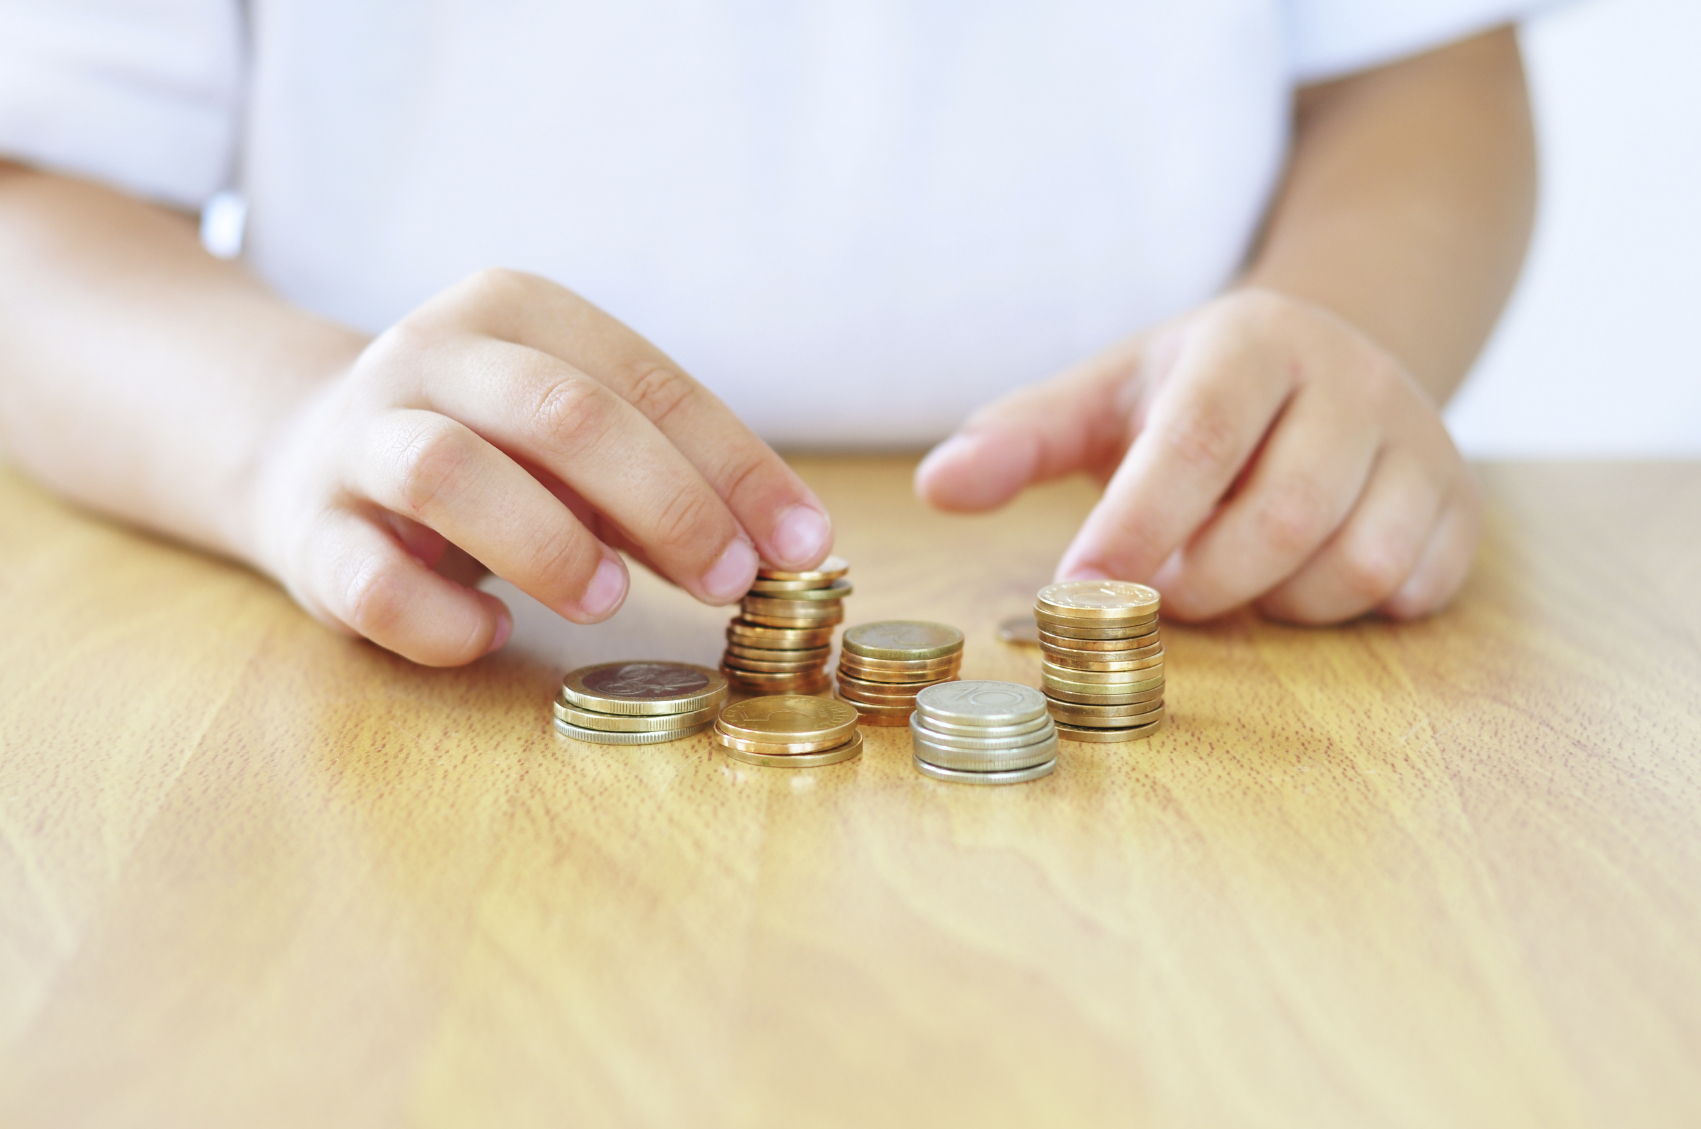 A survey into children's thoughts on money was conducted (Getty Images)